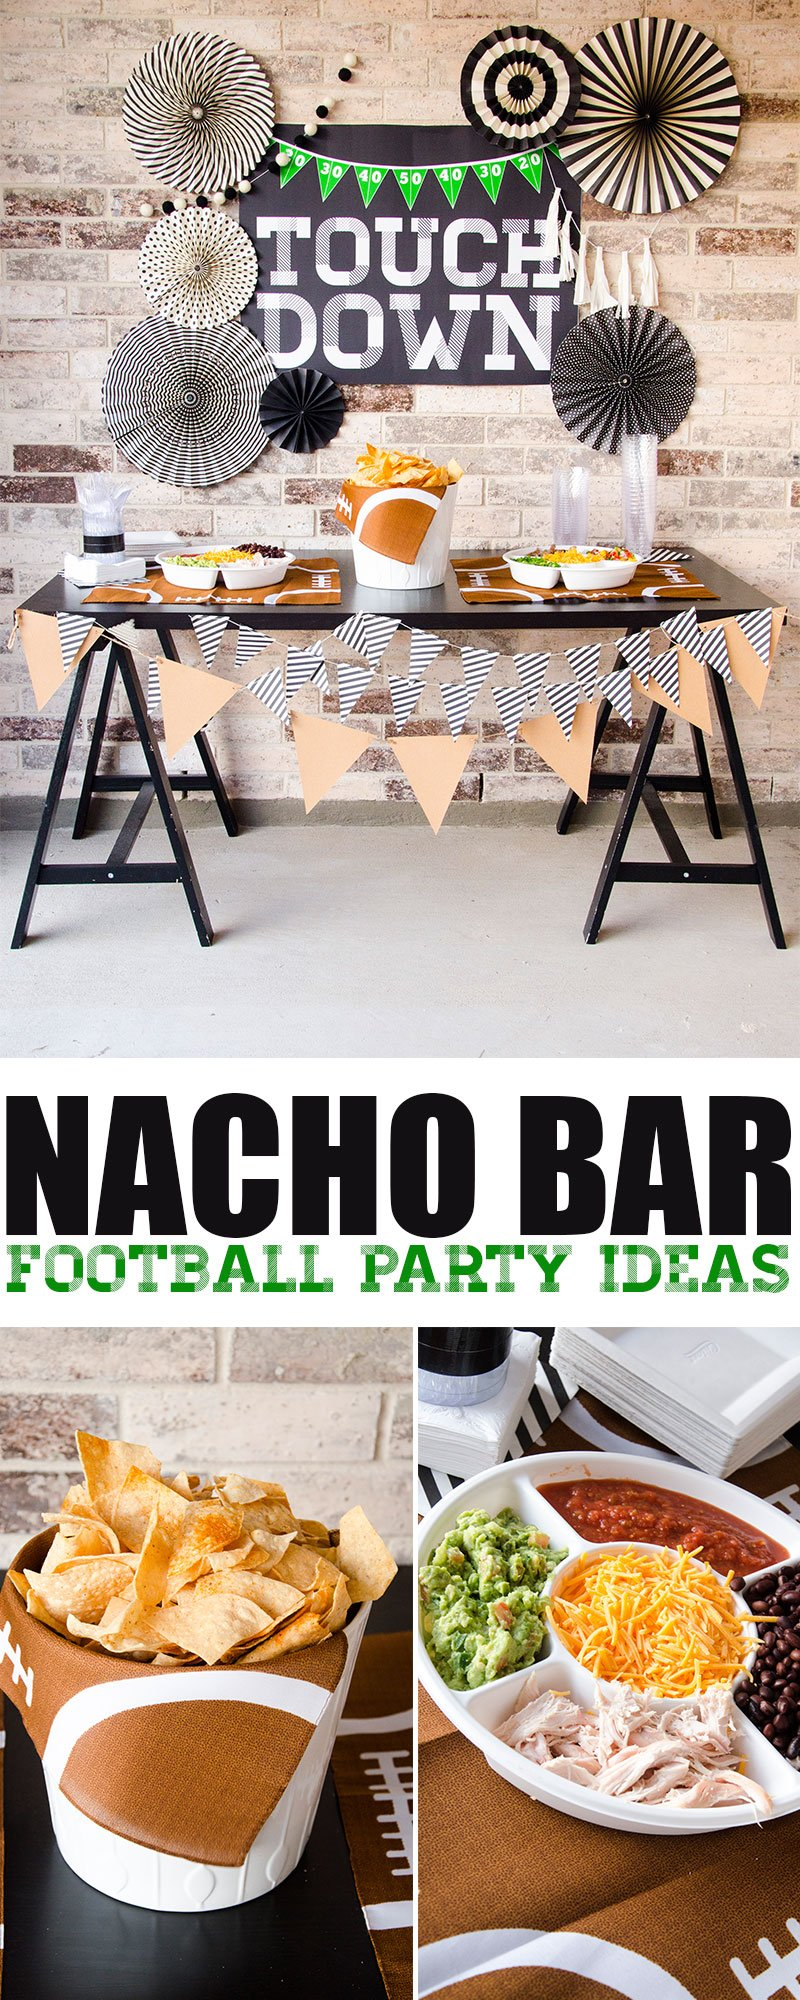 DIY Football Party Ideas & Printable Backdrop by Lindi Haws of Love The Day